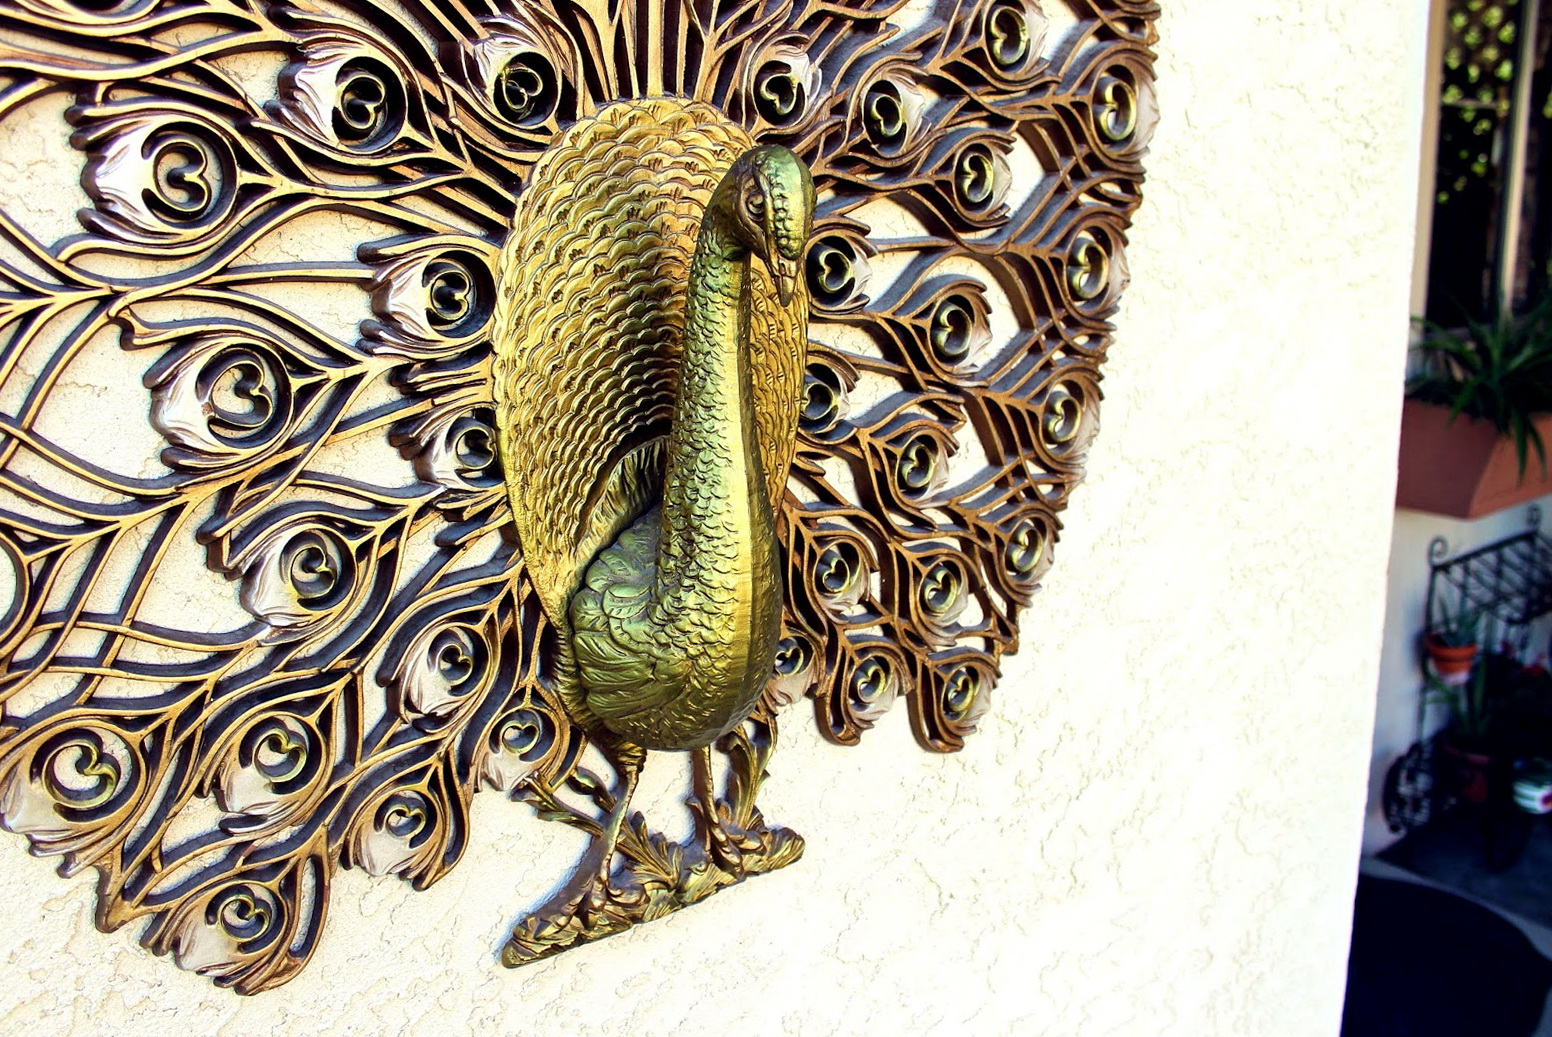 Vintage Peacock Wall Art